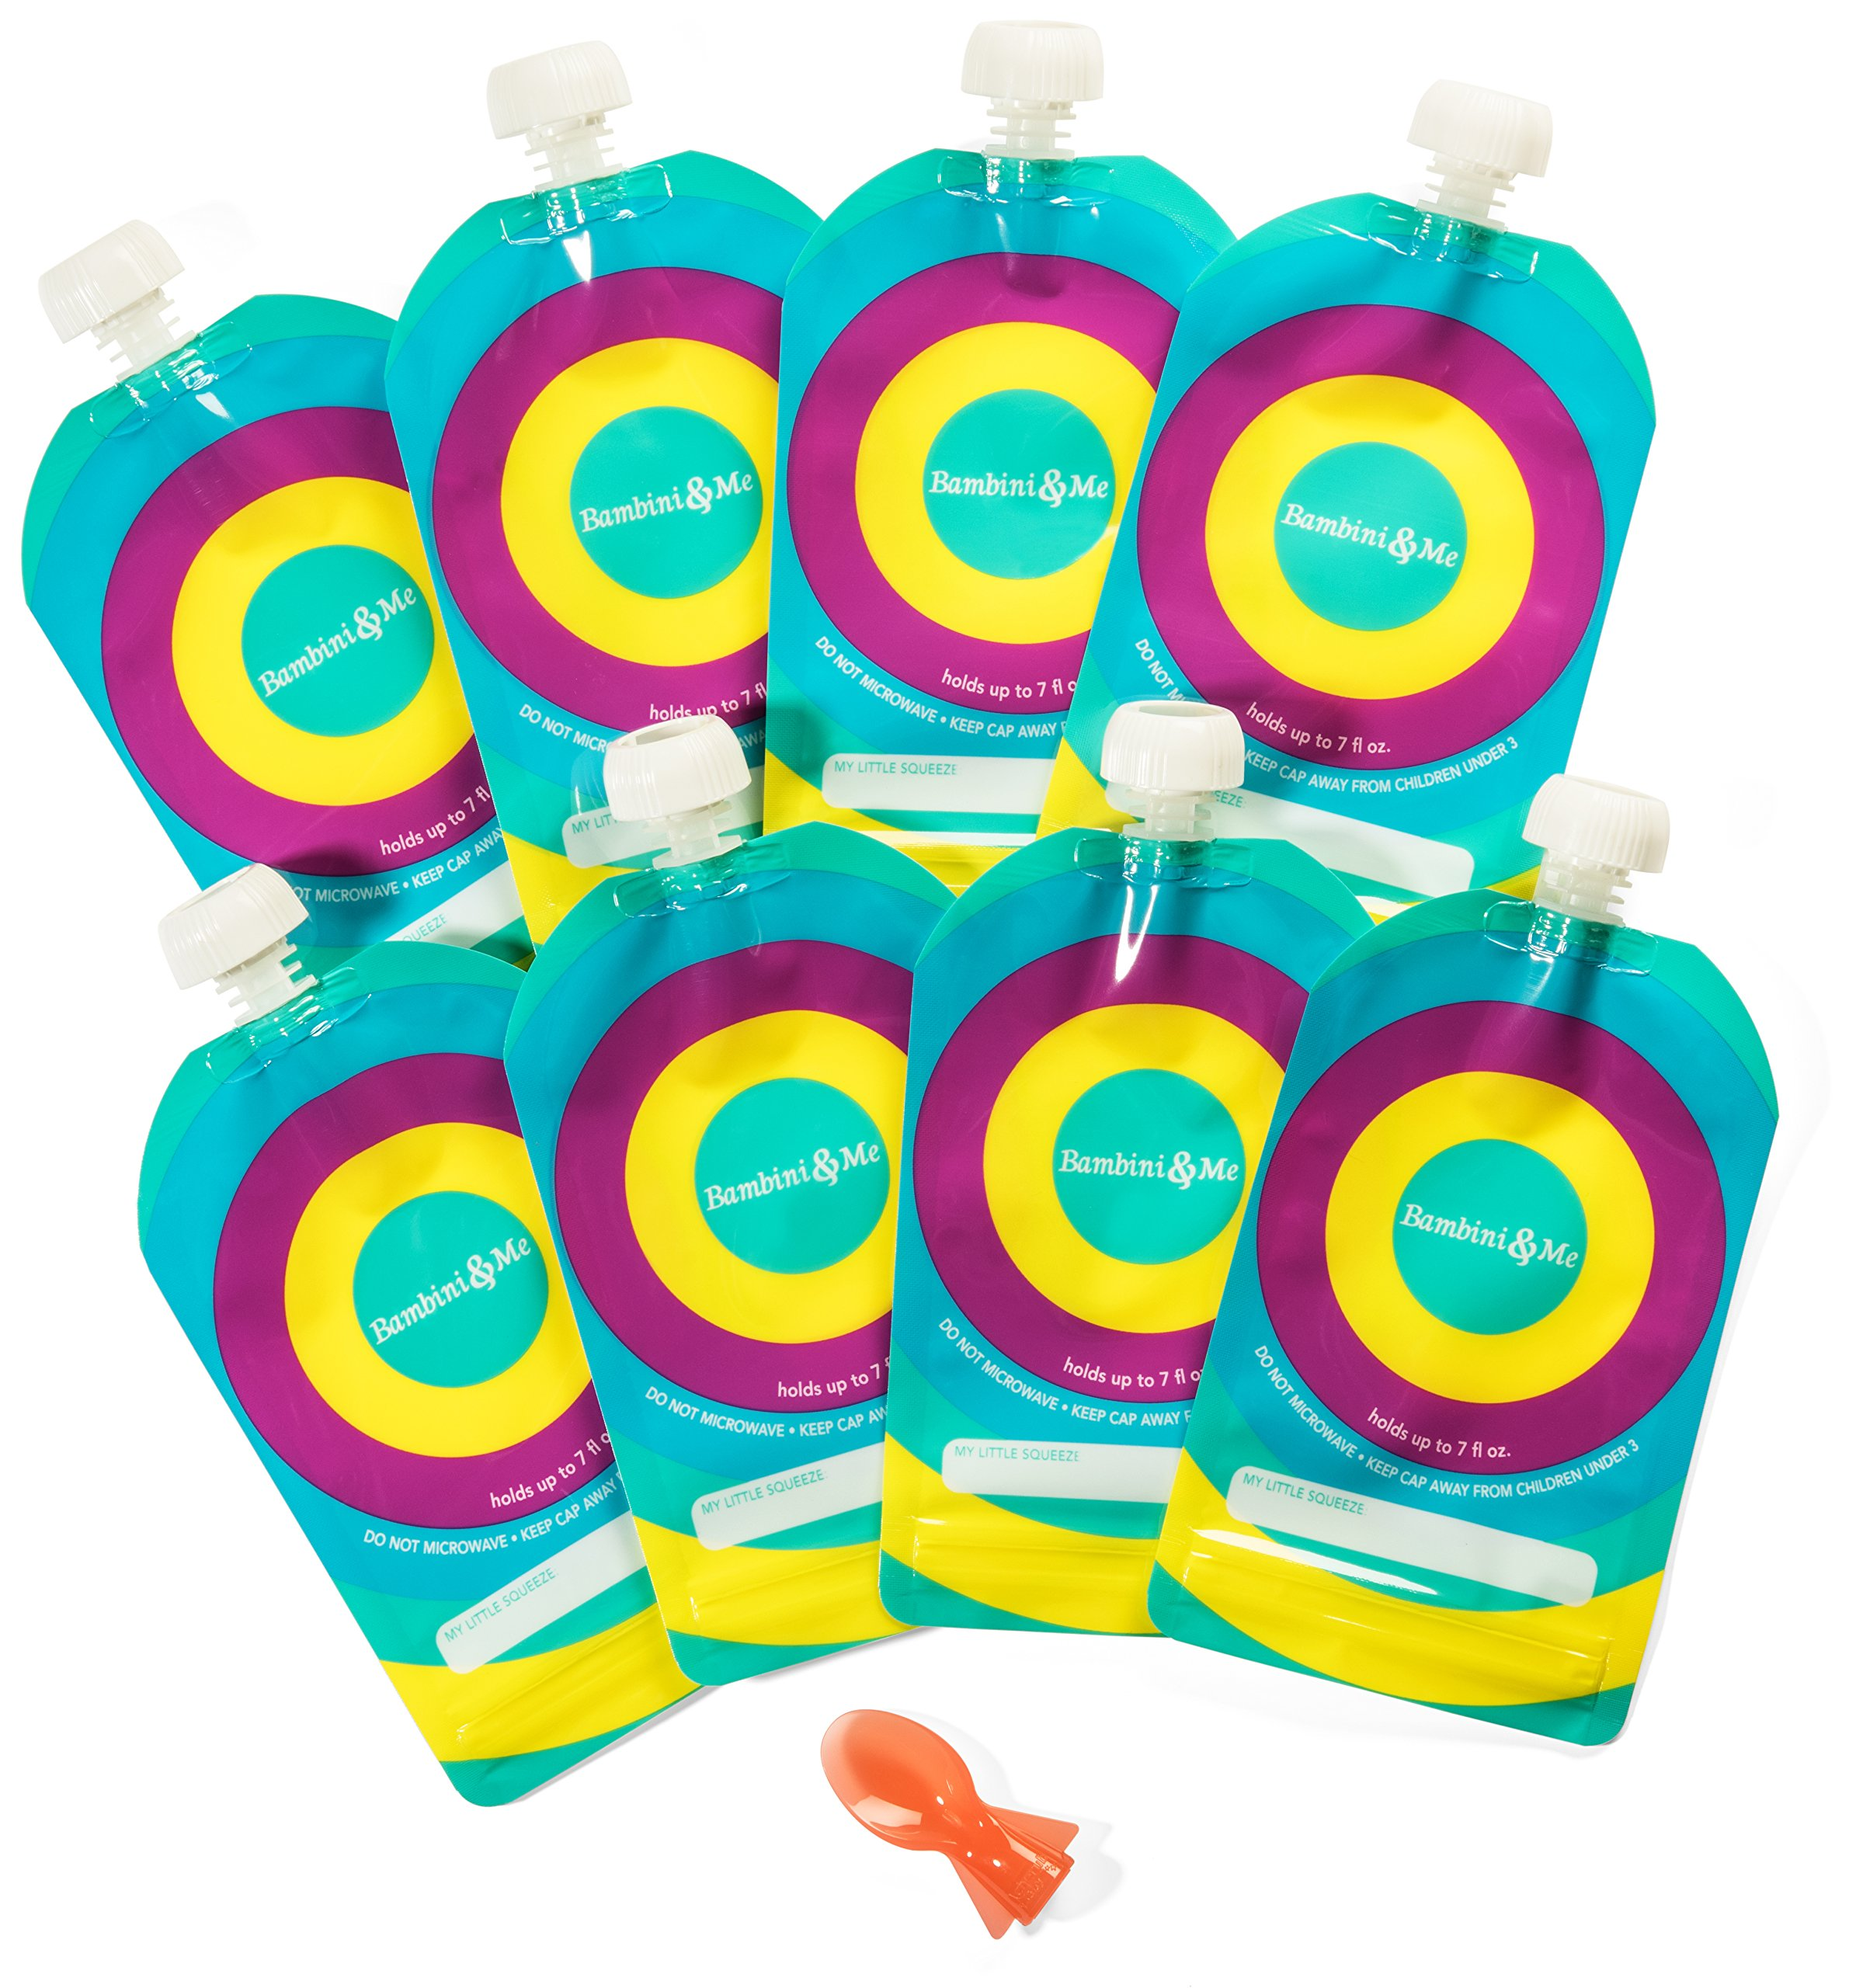 Reusable Baby Food Pouch (8-Pack) — Refillable 6 oz. Toddler Squeeze Pouches w/Leak Proof Cap – Ideal for Homemade Puree, Drinks, Snacks, Yogurt, Pudding, BONUS Silicone Spoon -Bambini & ME